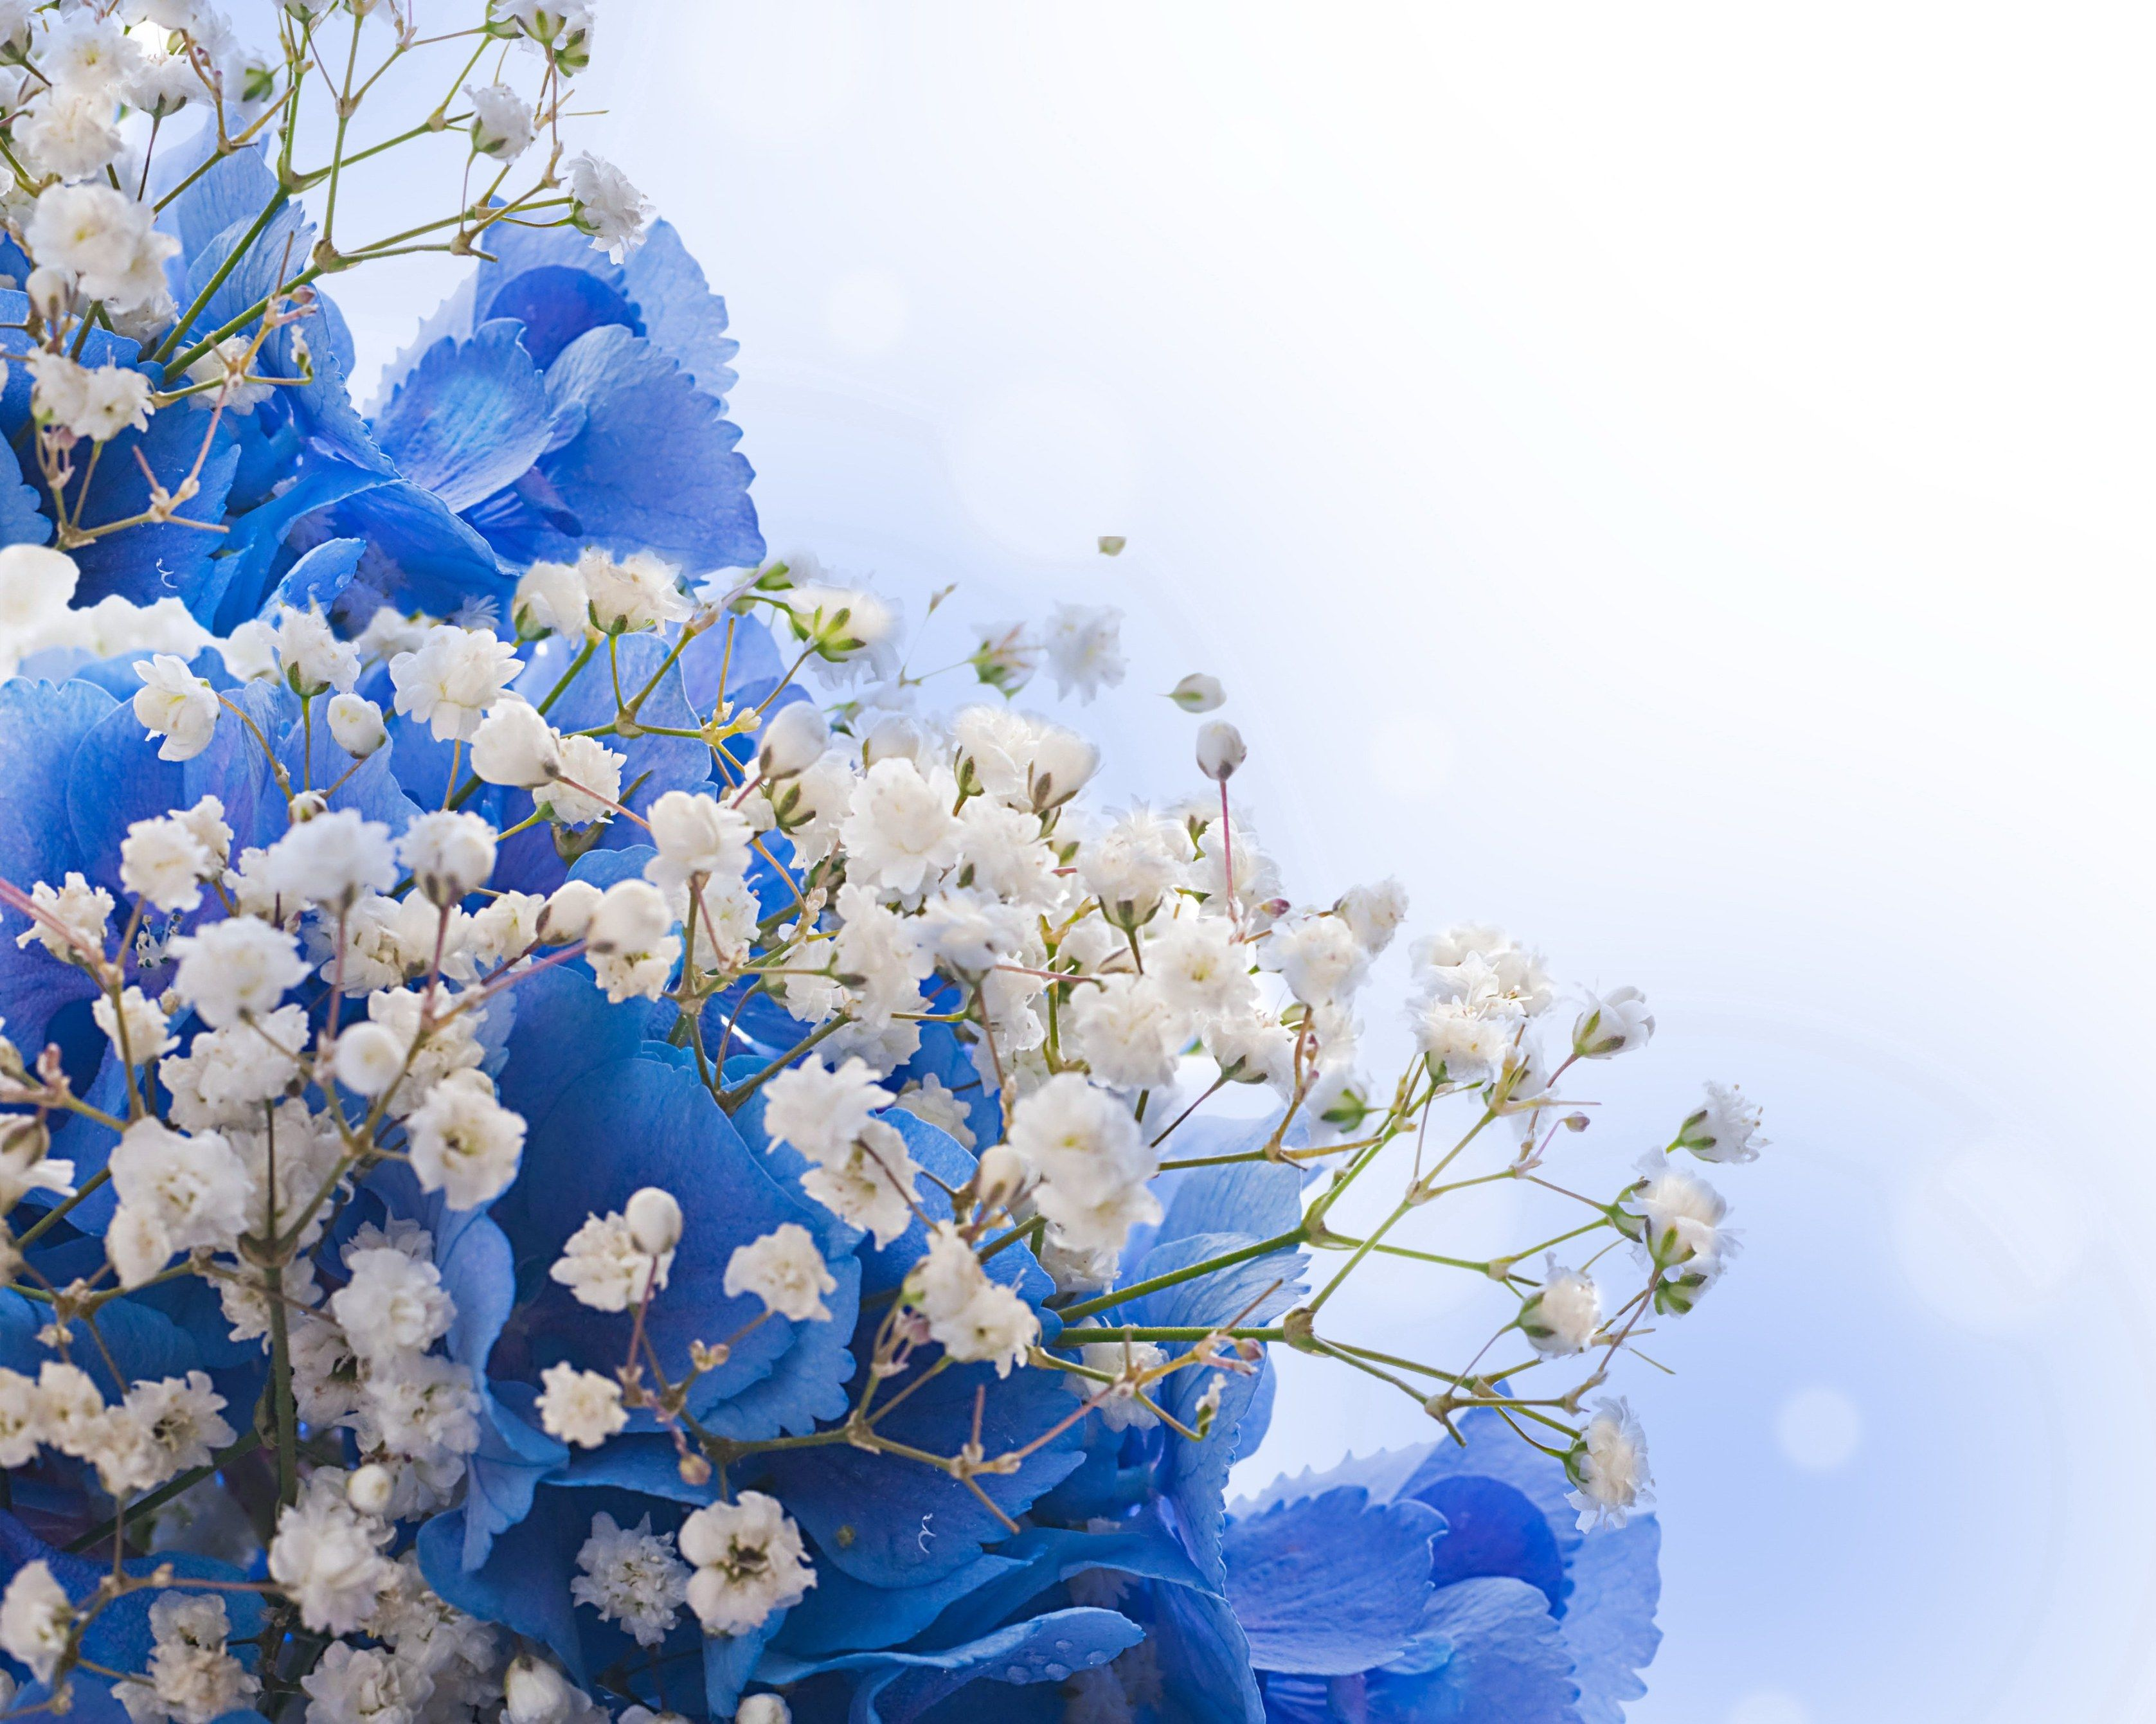 Blue Flowers Desktop Background Wallpapers Hd Free 522008 White And Blue Flowers Beautiful Flowers Wallpapers Flowers